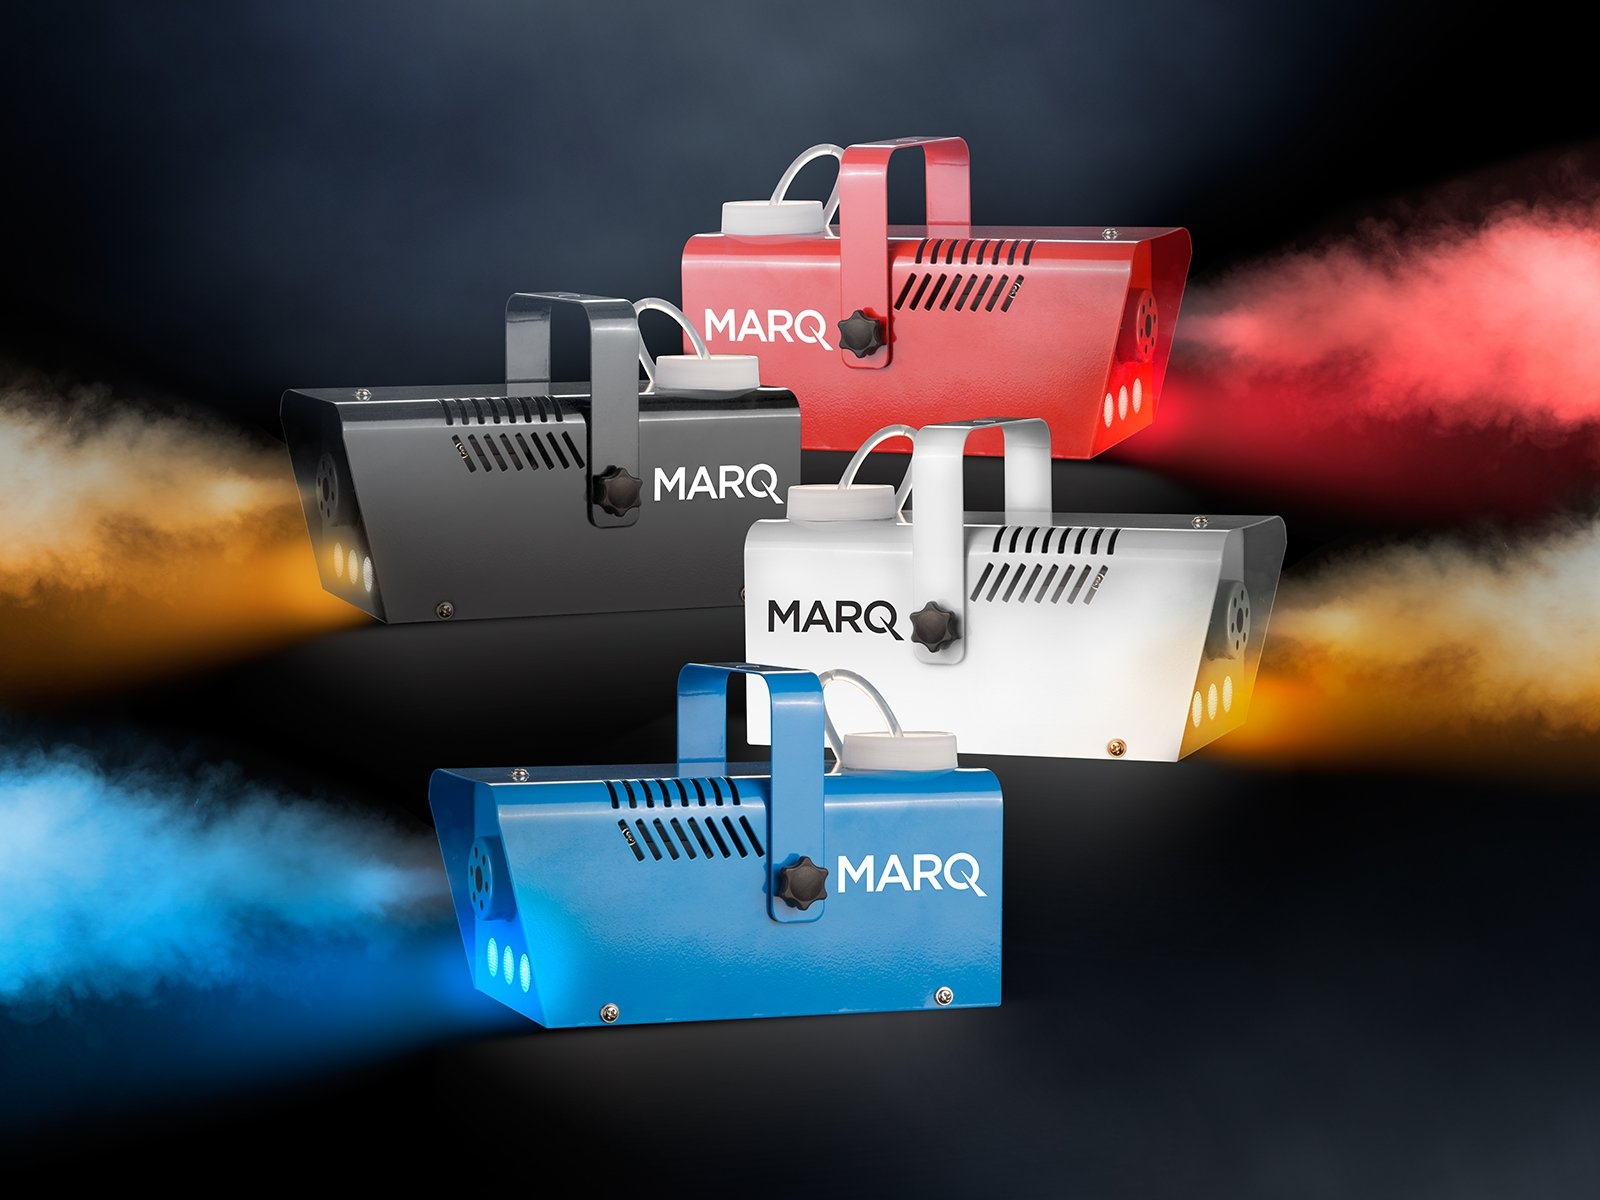 MARQ Fog 400 LED | 400W Water-Based Special Effects Fog Machine with Red-Color LED Lights (Red) by MARQ (Image #1)